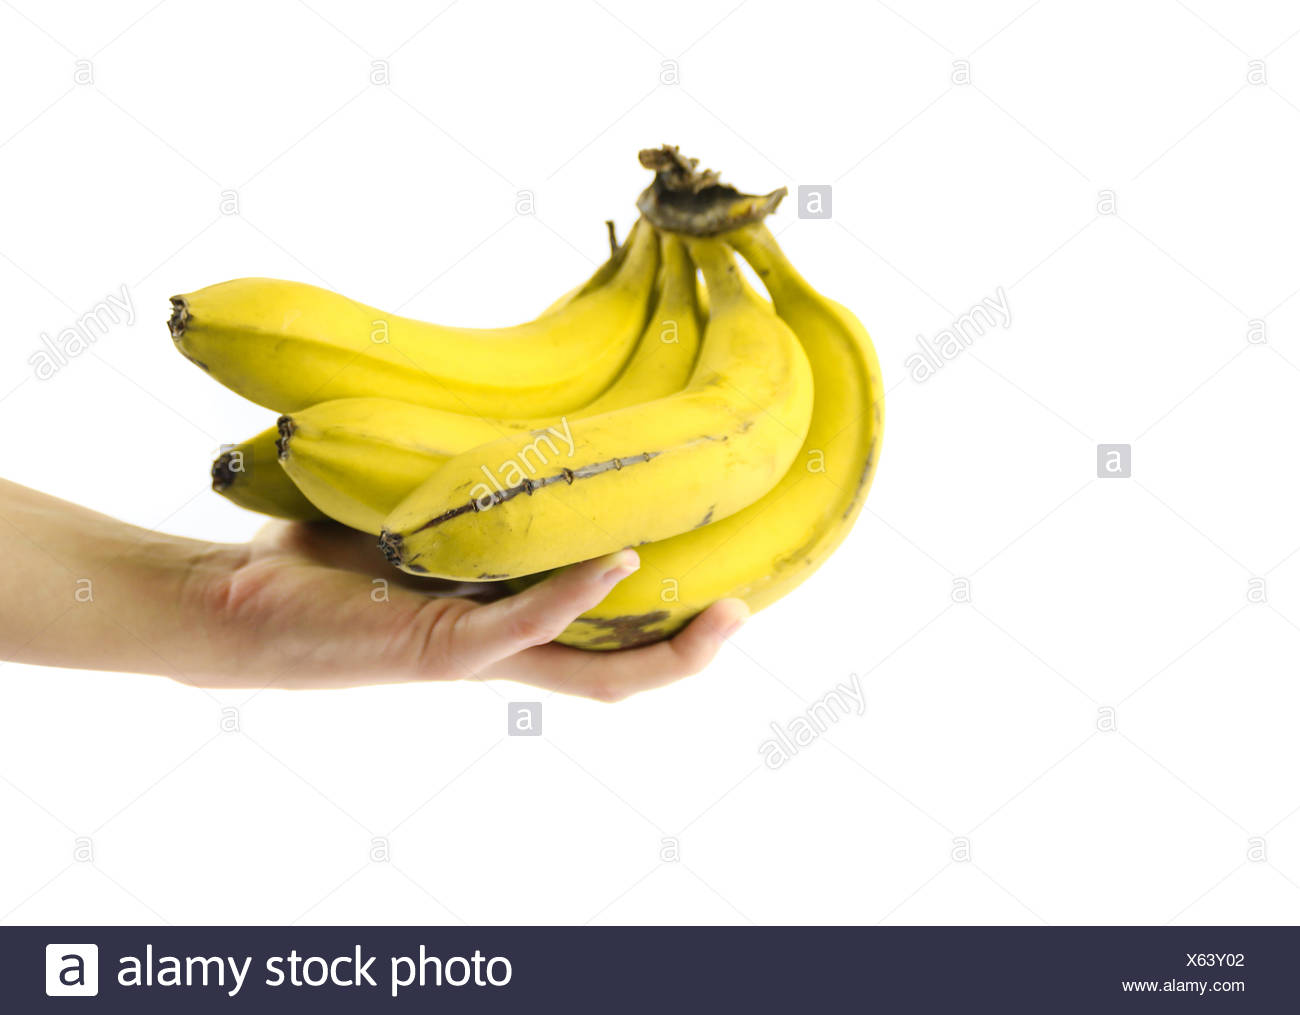 Five Photographs Of Banana In Seach Of >> Have A Banana Stock Photo 279140850 Alamy